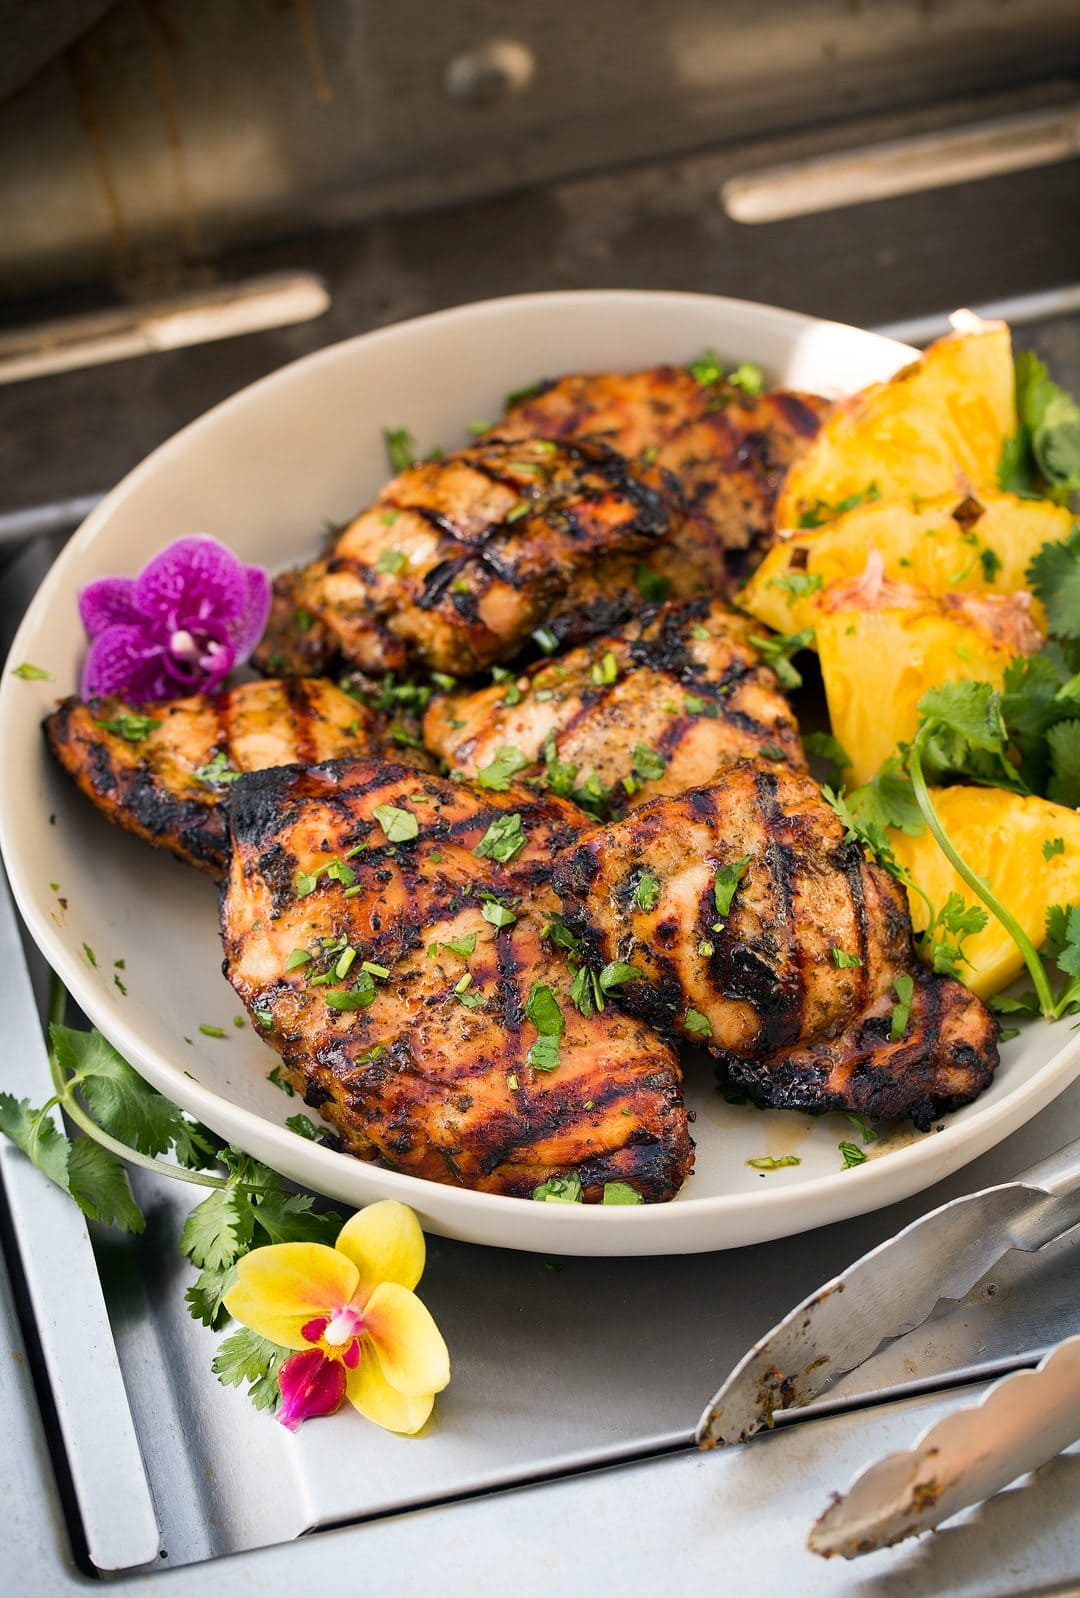 Grilled Chicken With Jerk Chicken Marinade